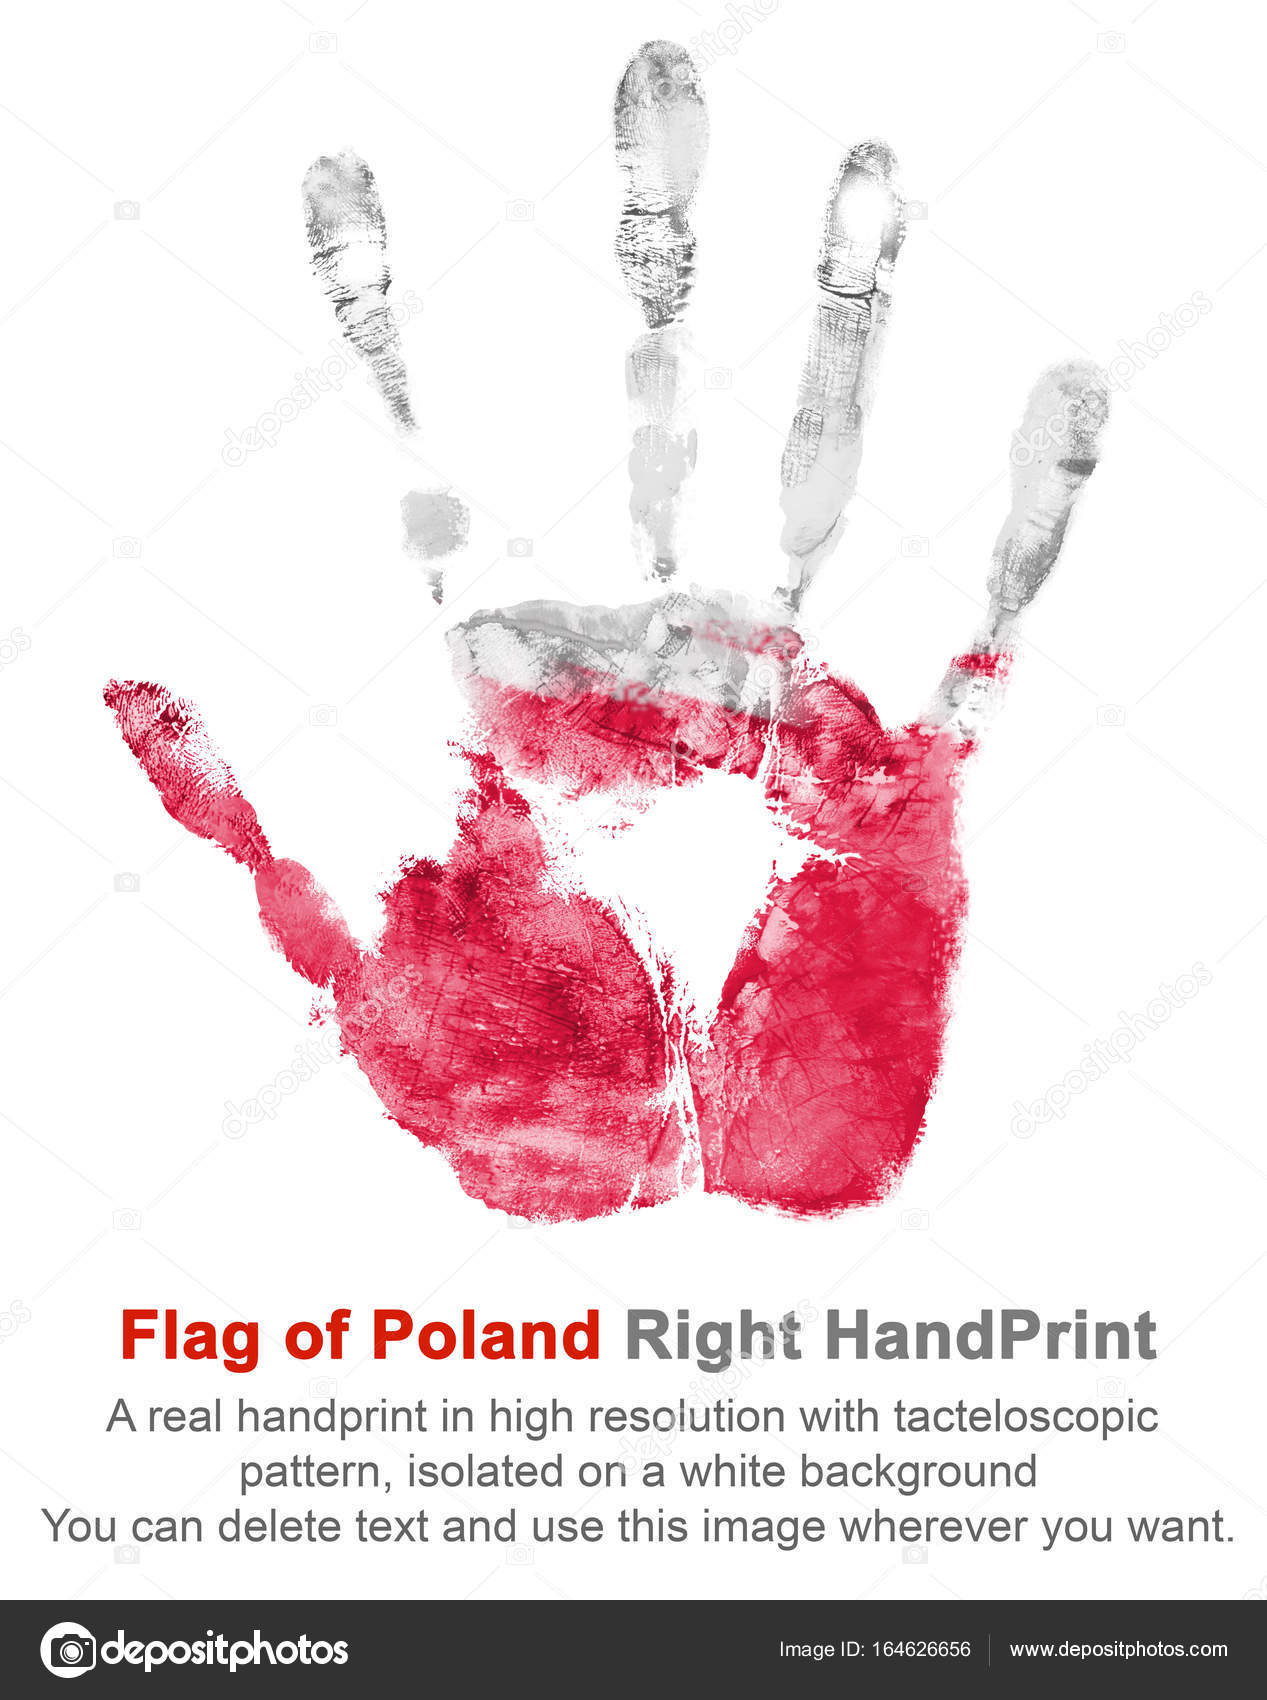 right hand print in poland flag colors on white isolated